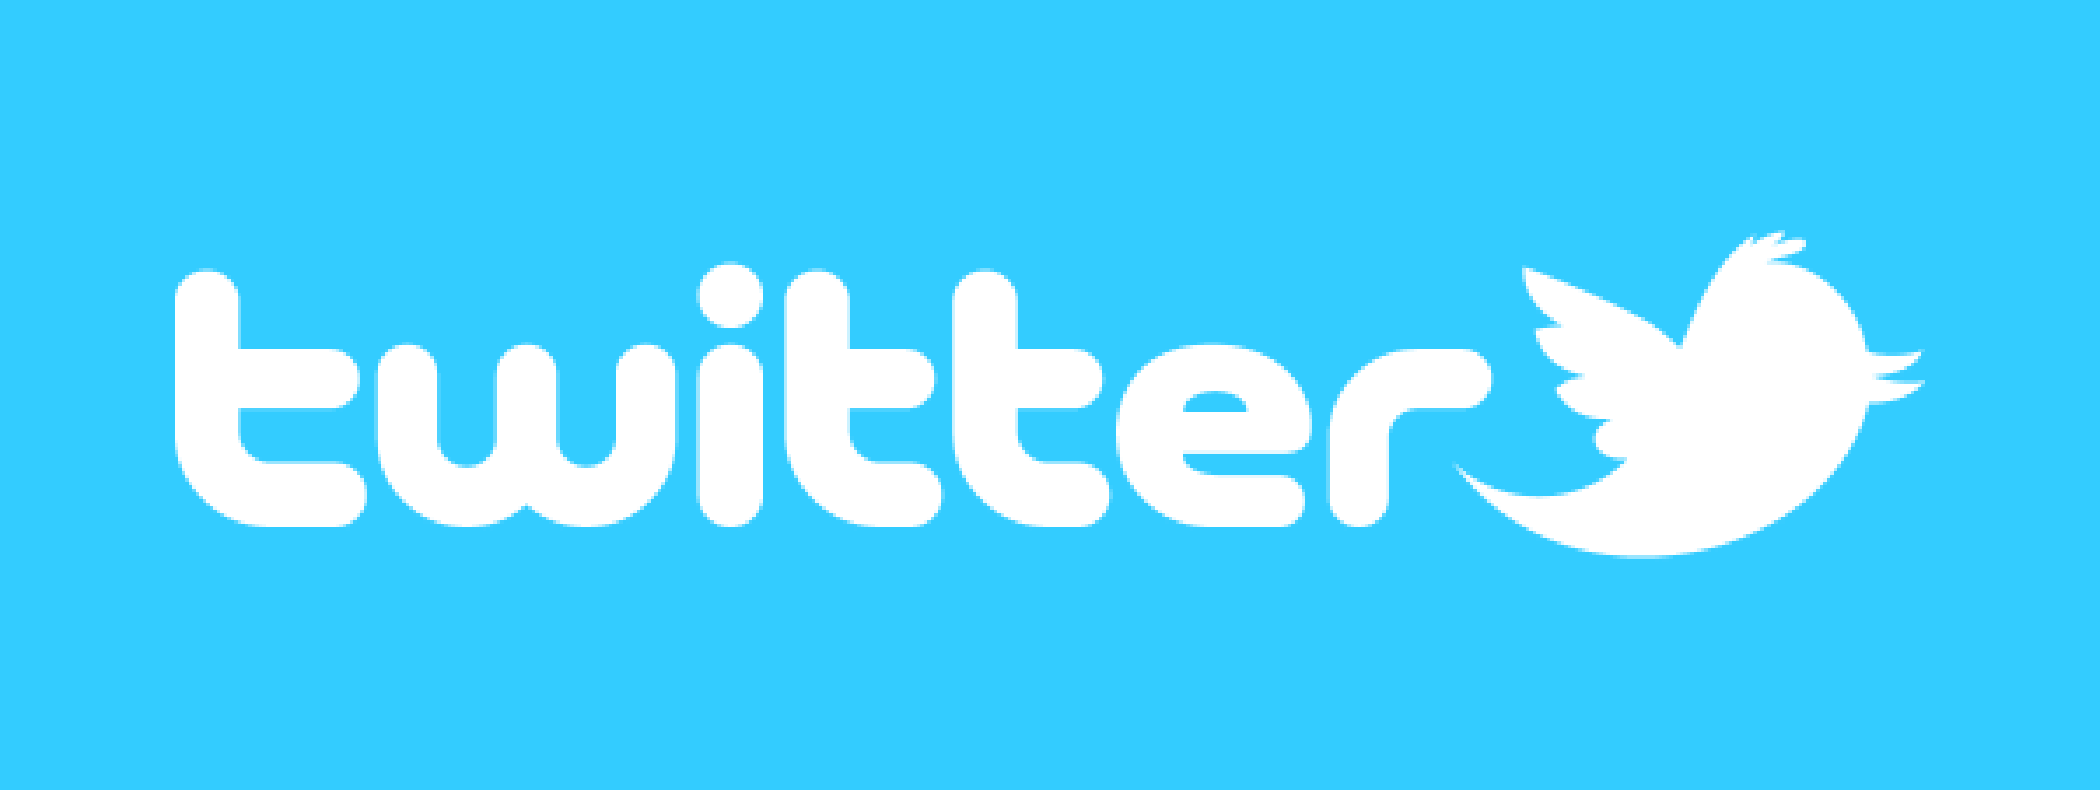 Here Is Twitter's New Logo - Business Insider